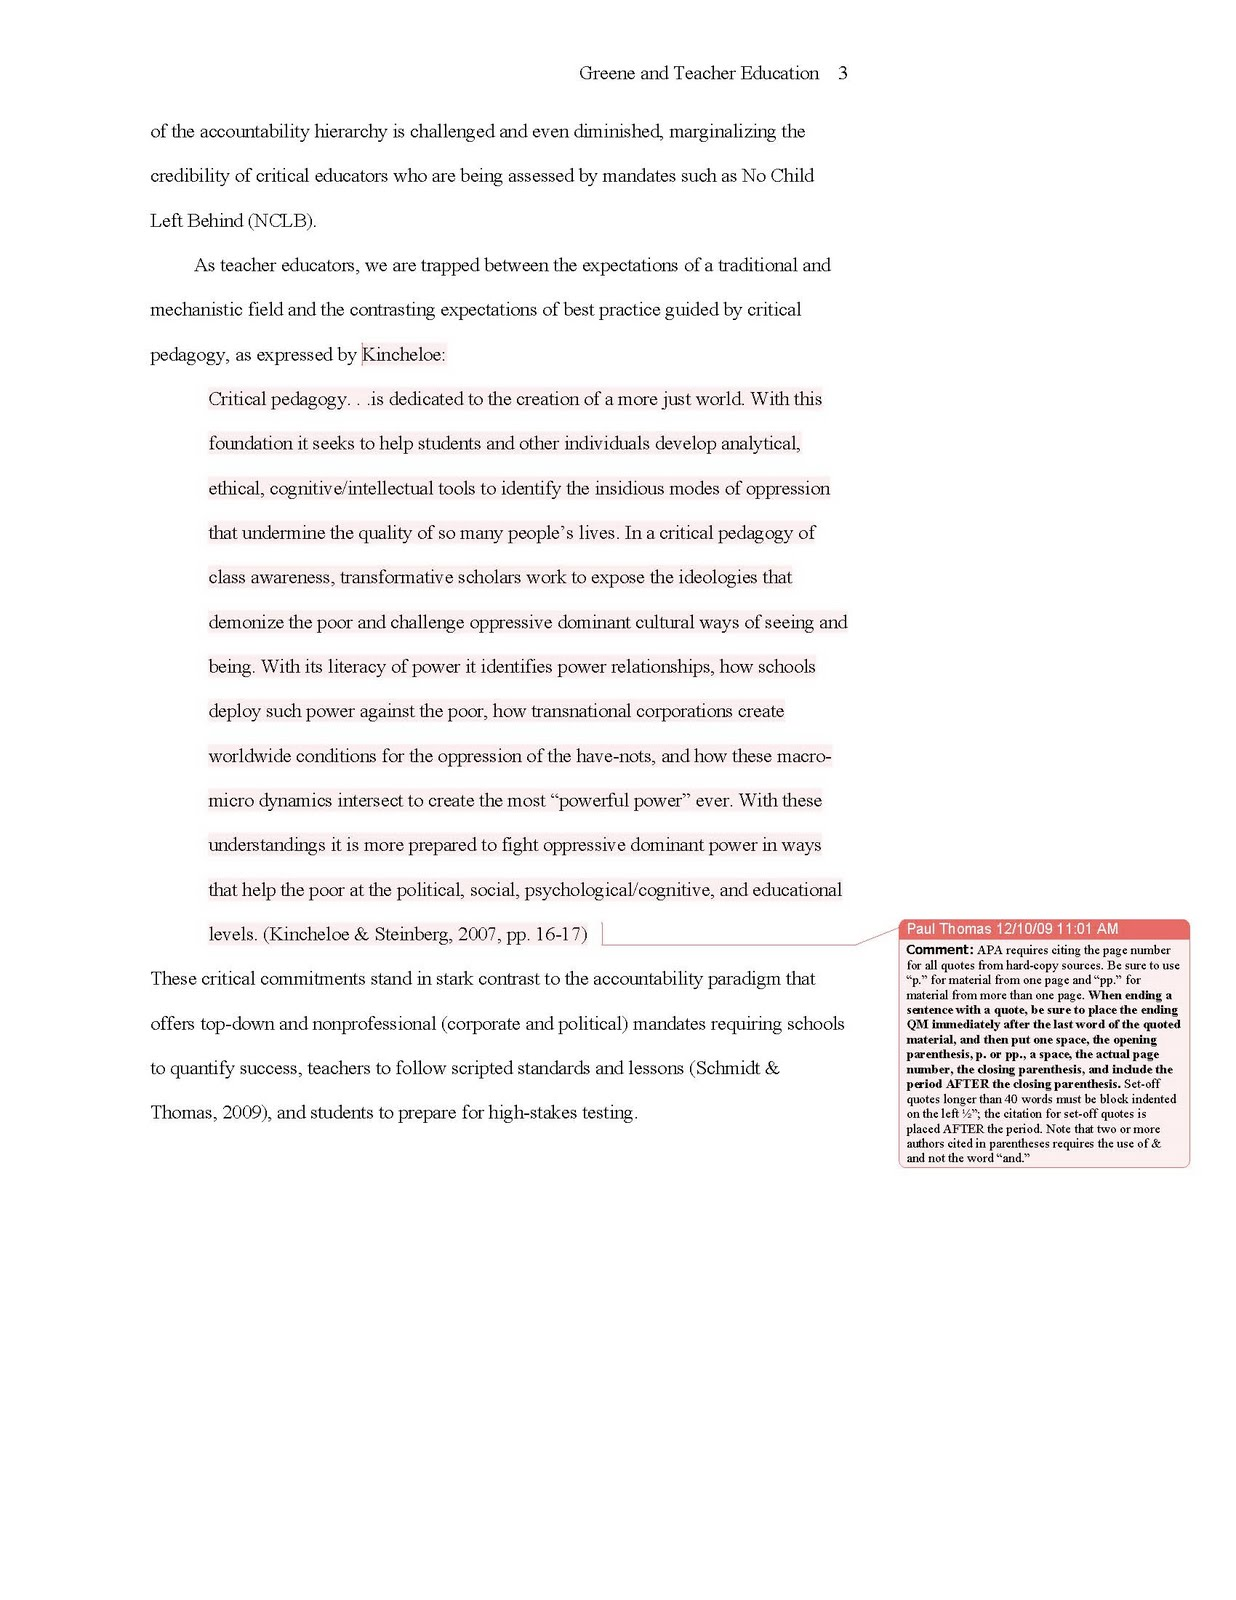 page layout of a research paper